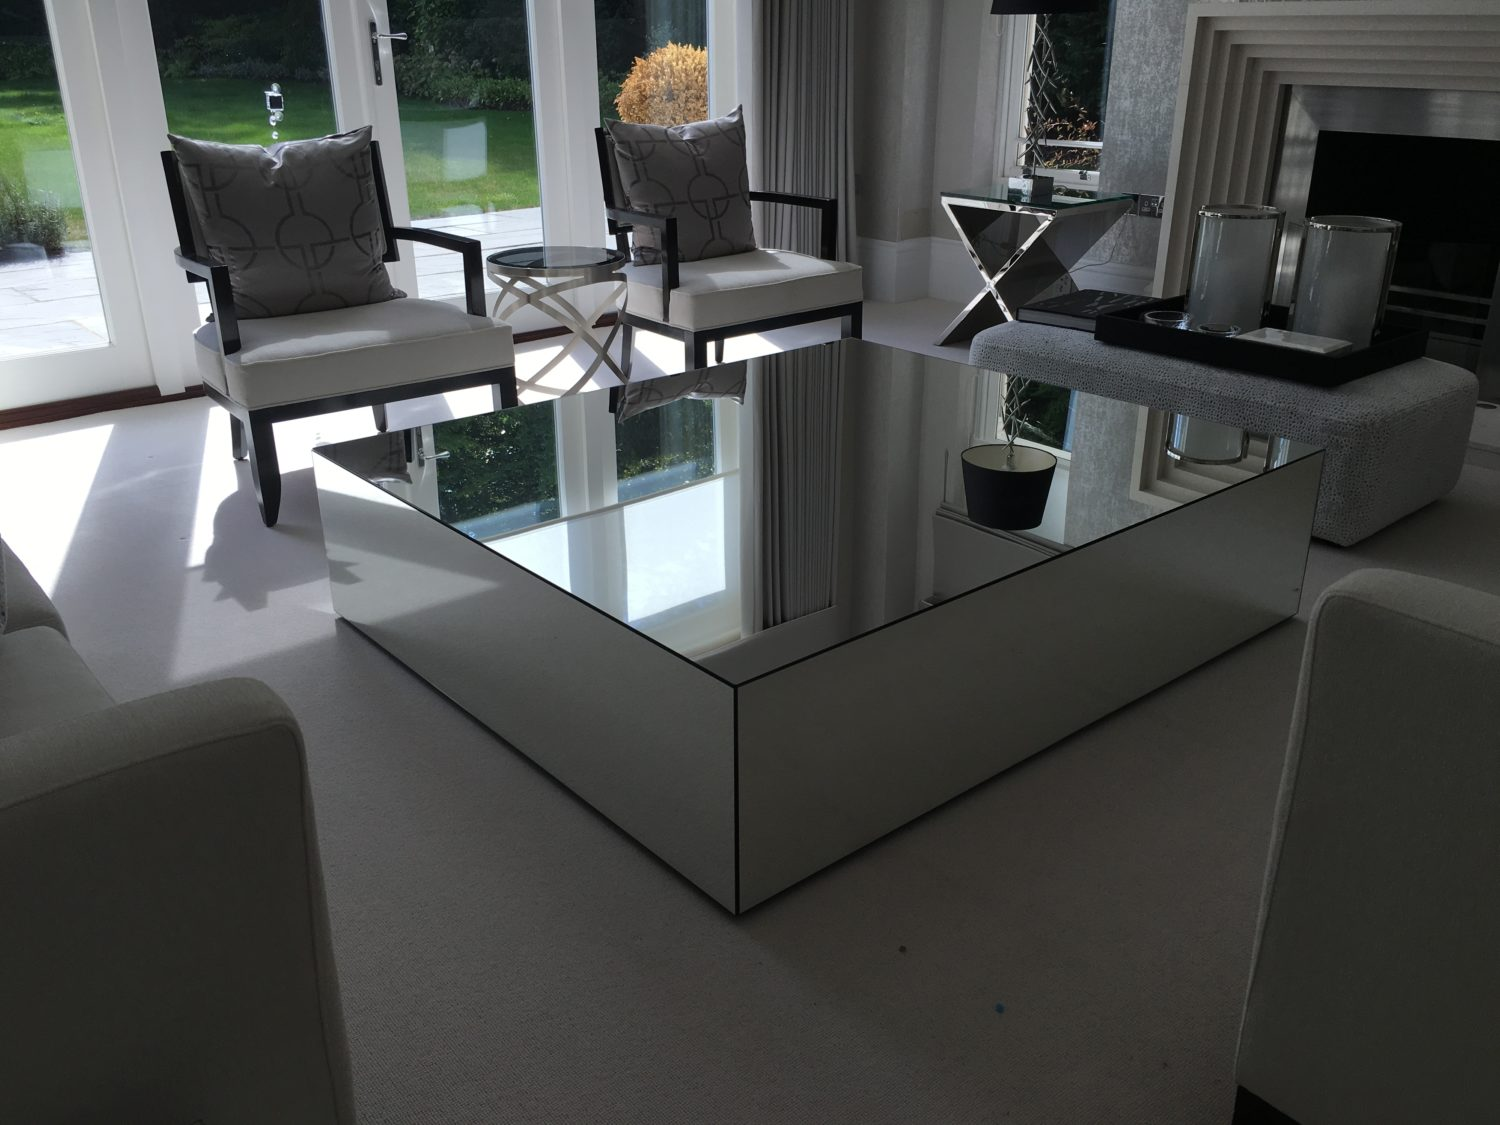 Mirrored coffee tables klarity glass furniture Mirror glass furniture